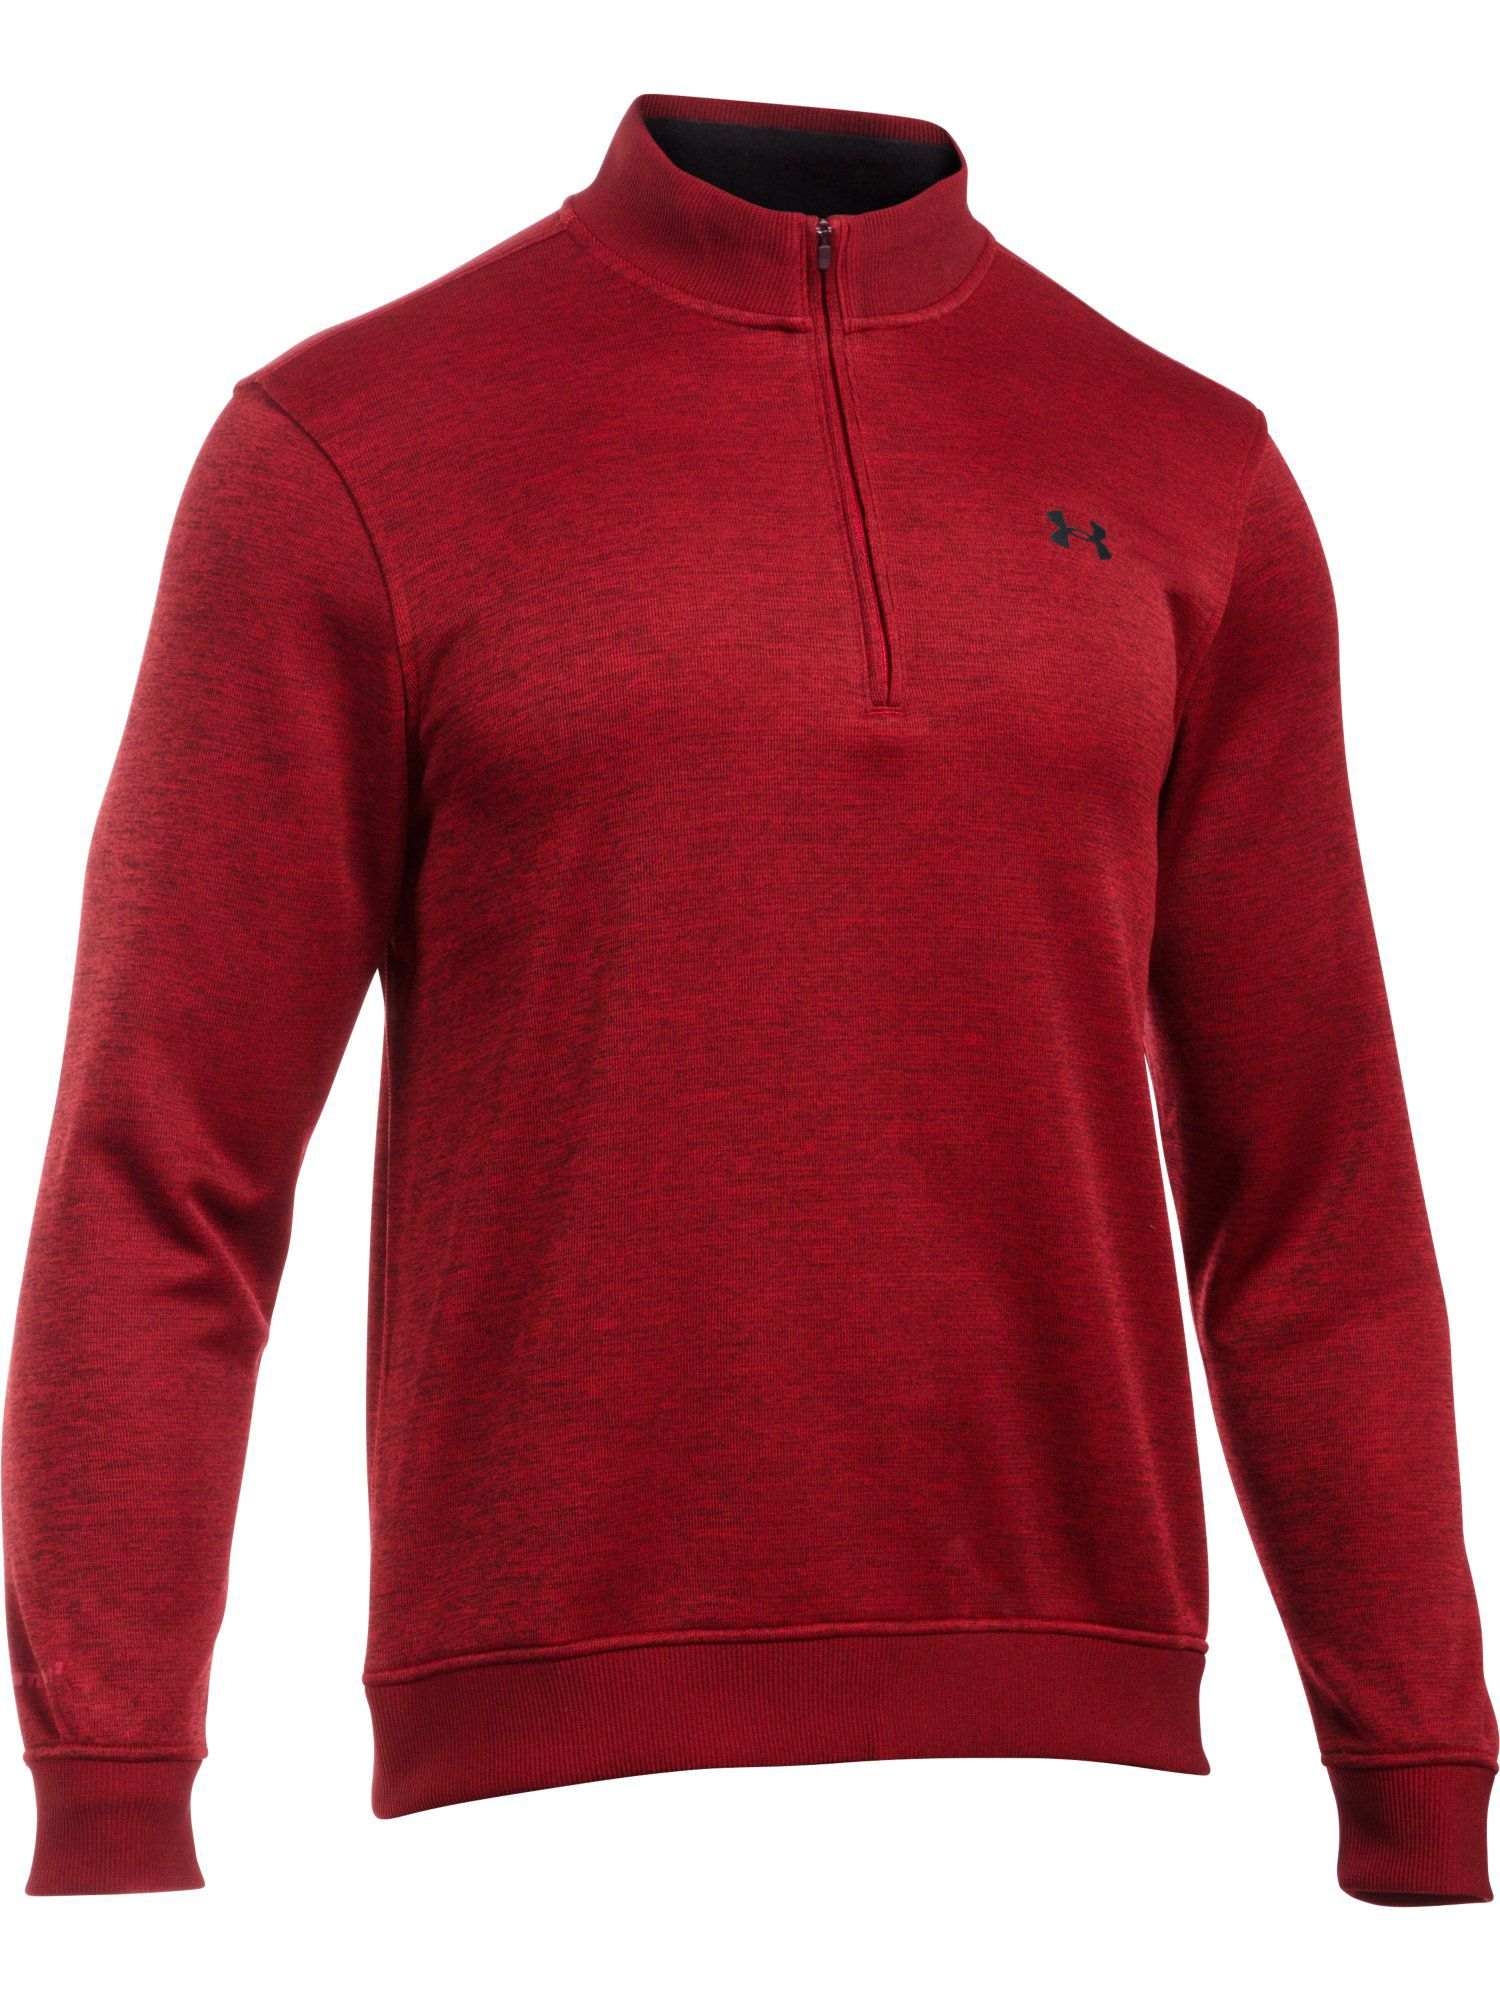 Red jumpers house of fraser for Flannel shirt under sweater